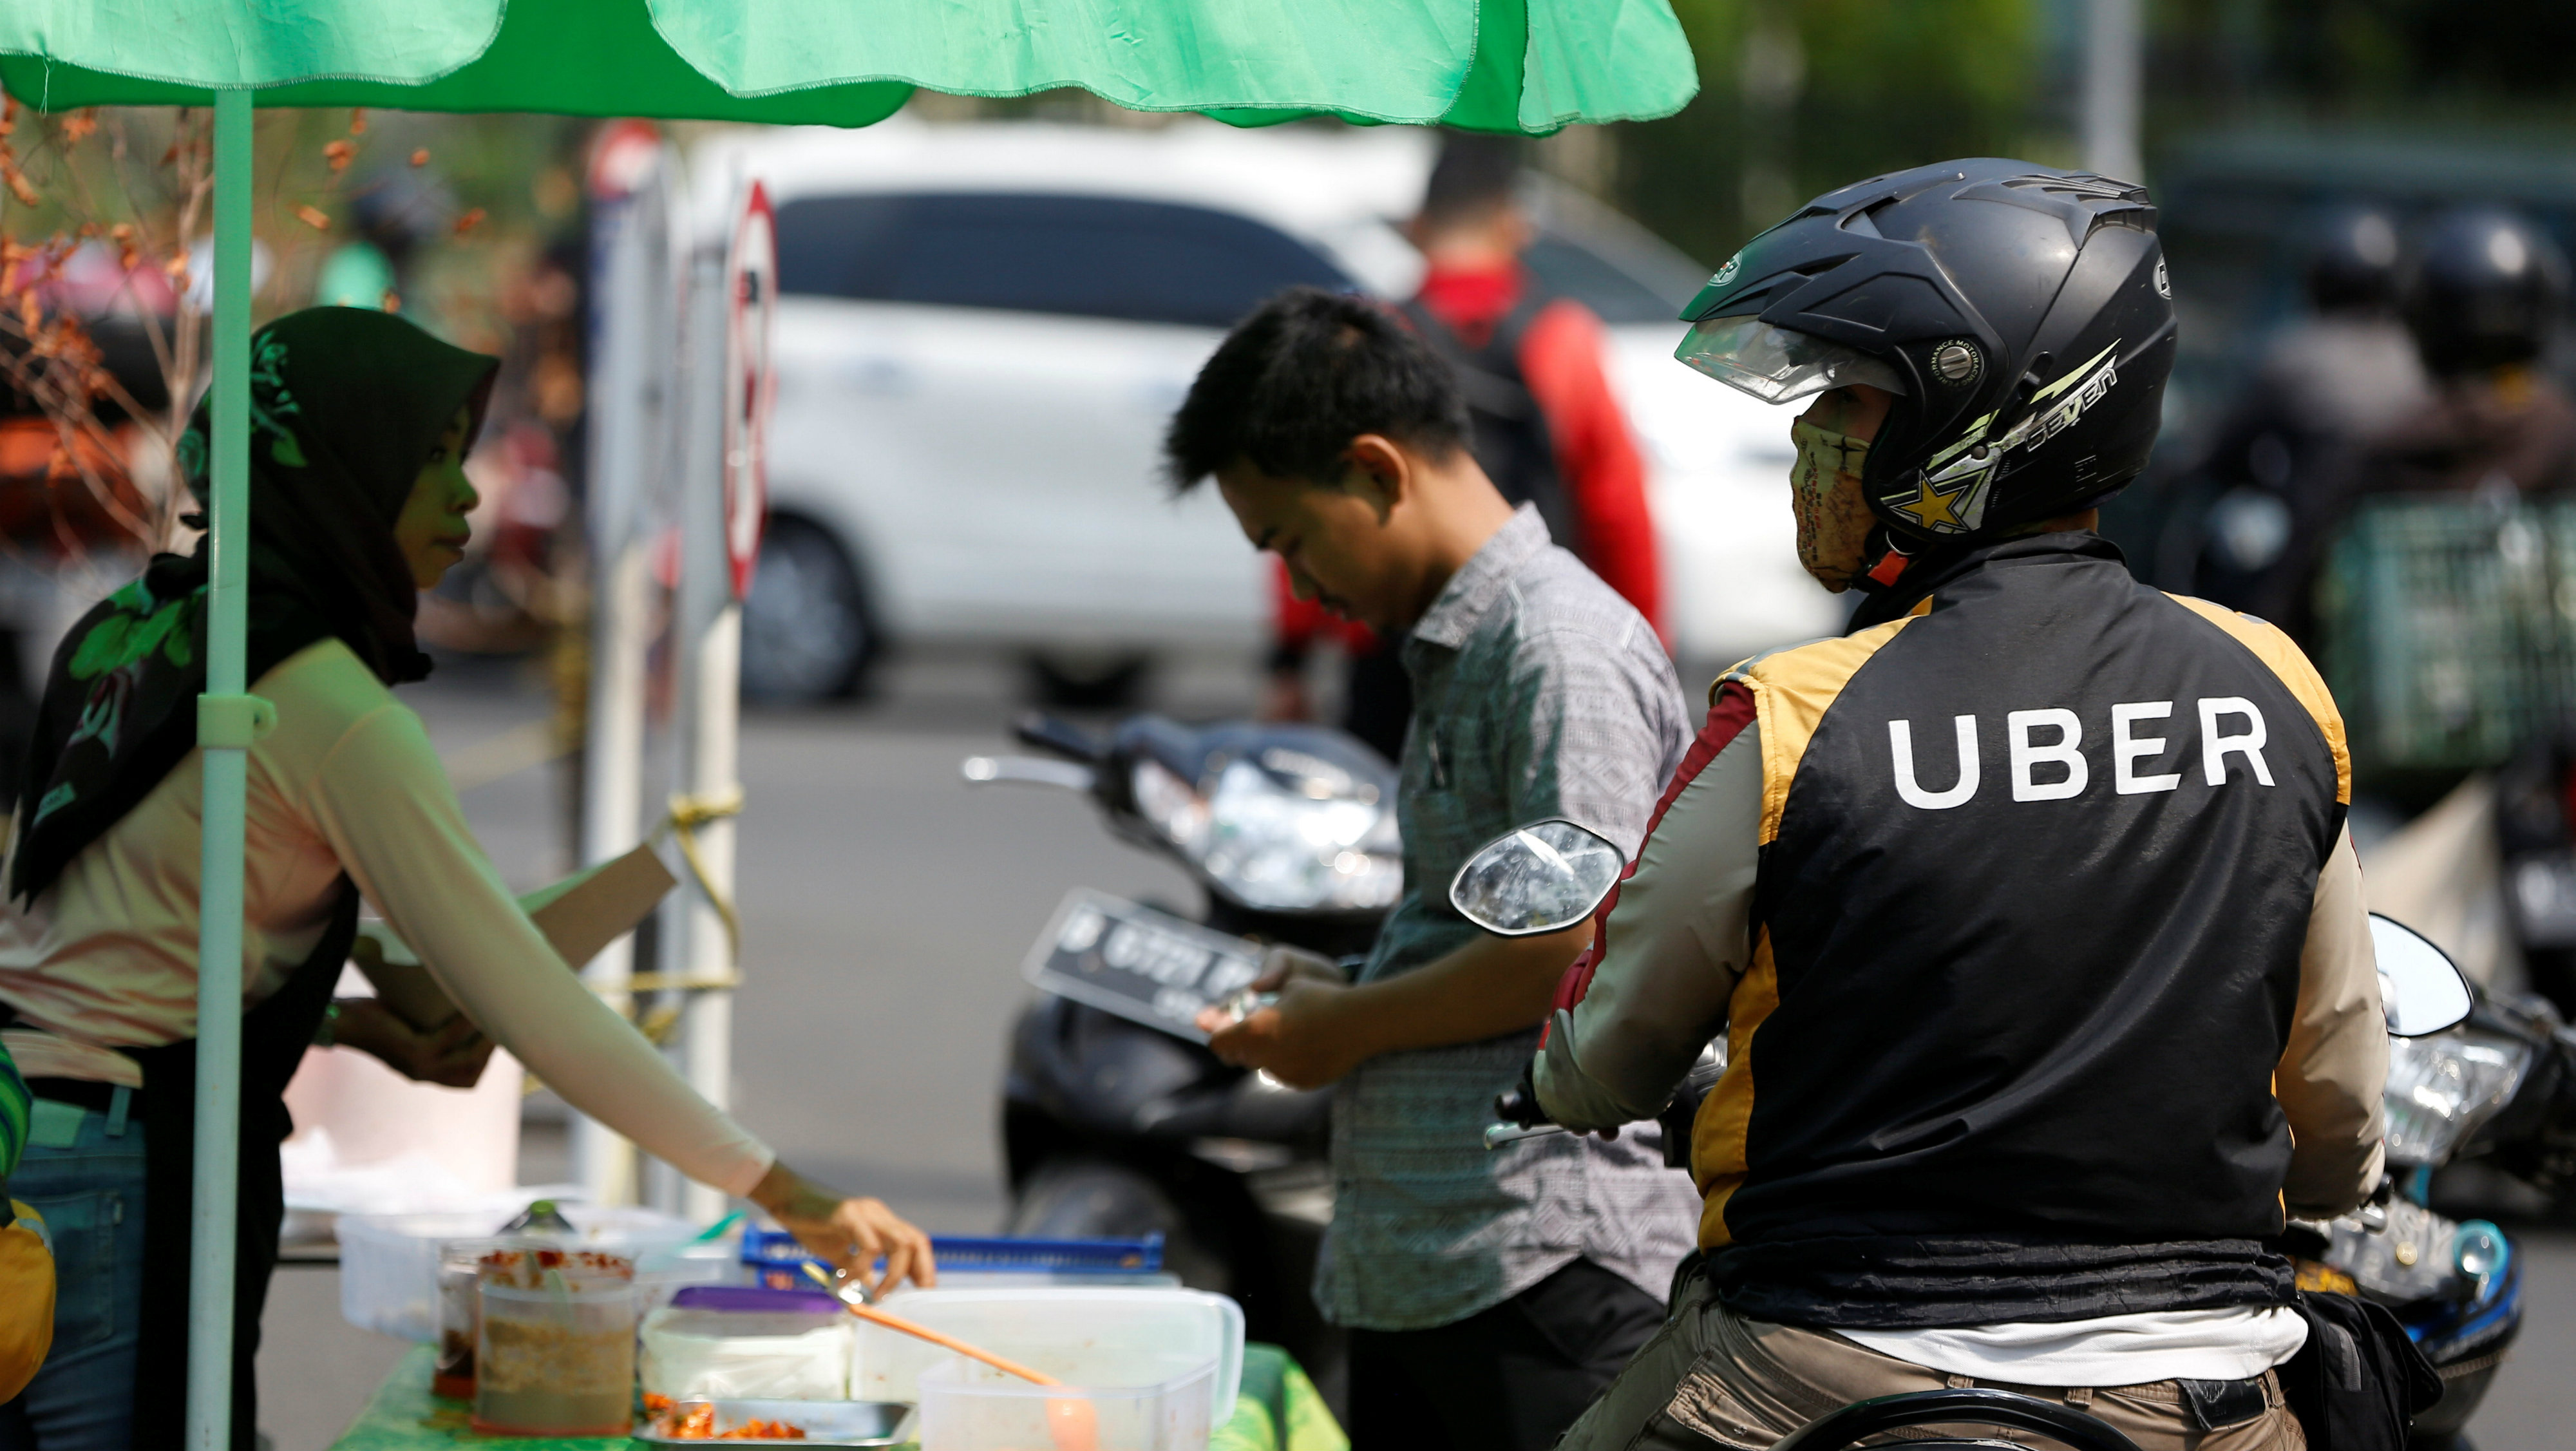 An Uber motorcycle taxi driver stops at a food stall next to a shopping mall in Jakarta, Indonesia